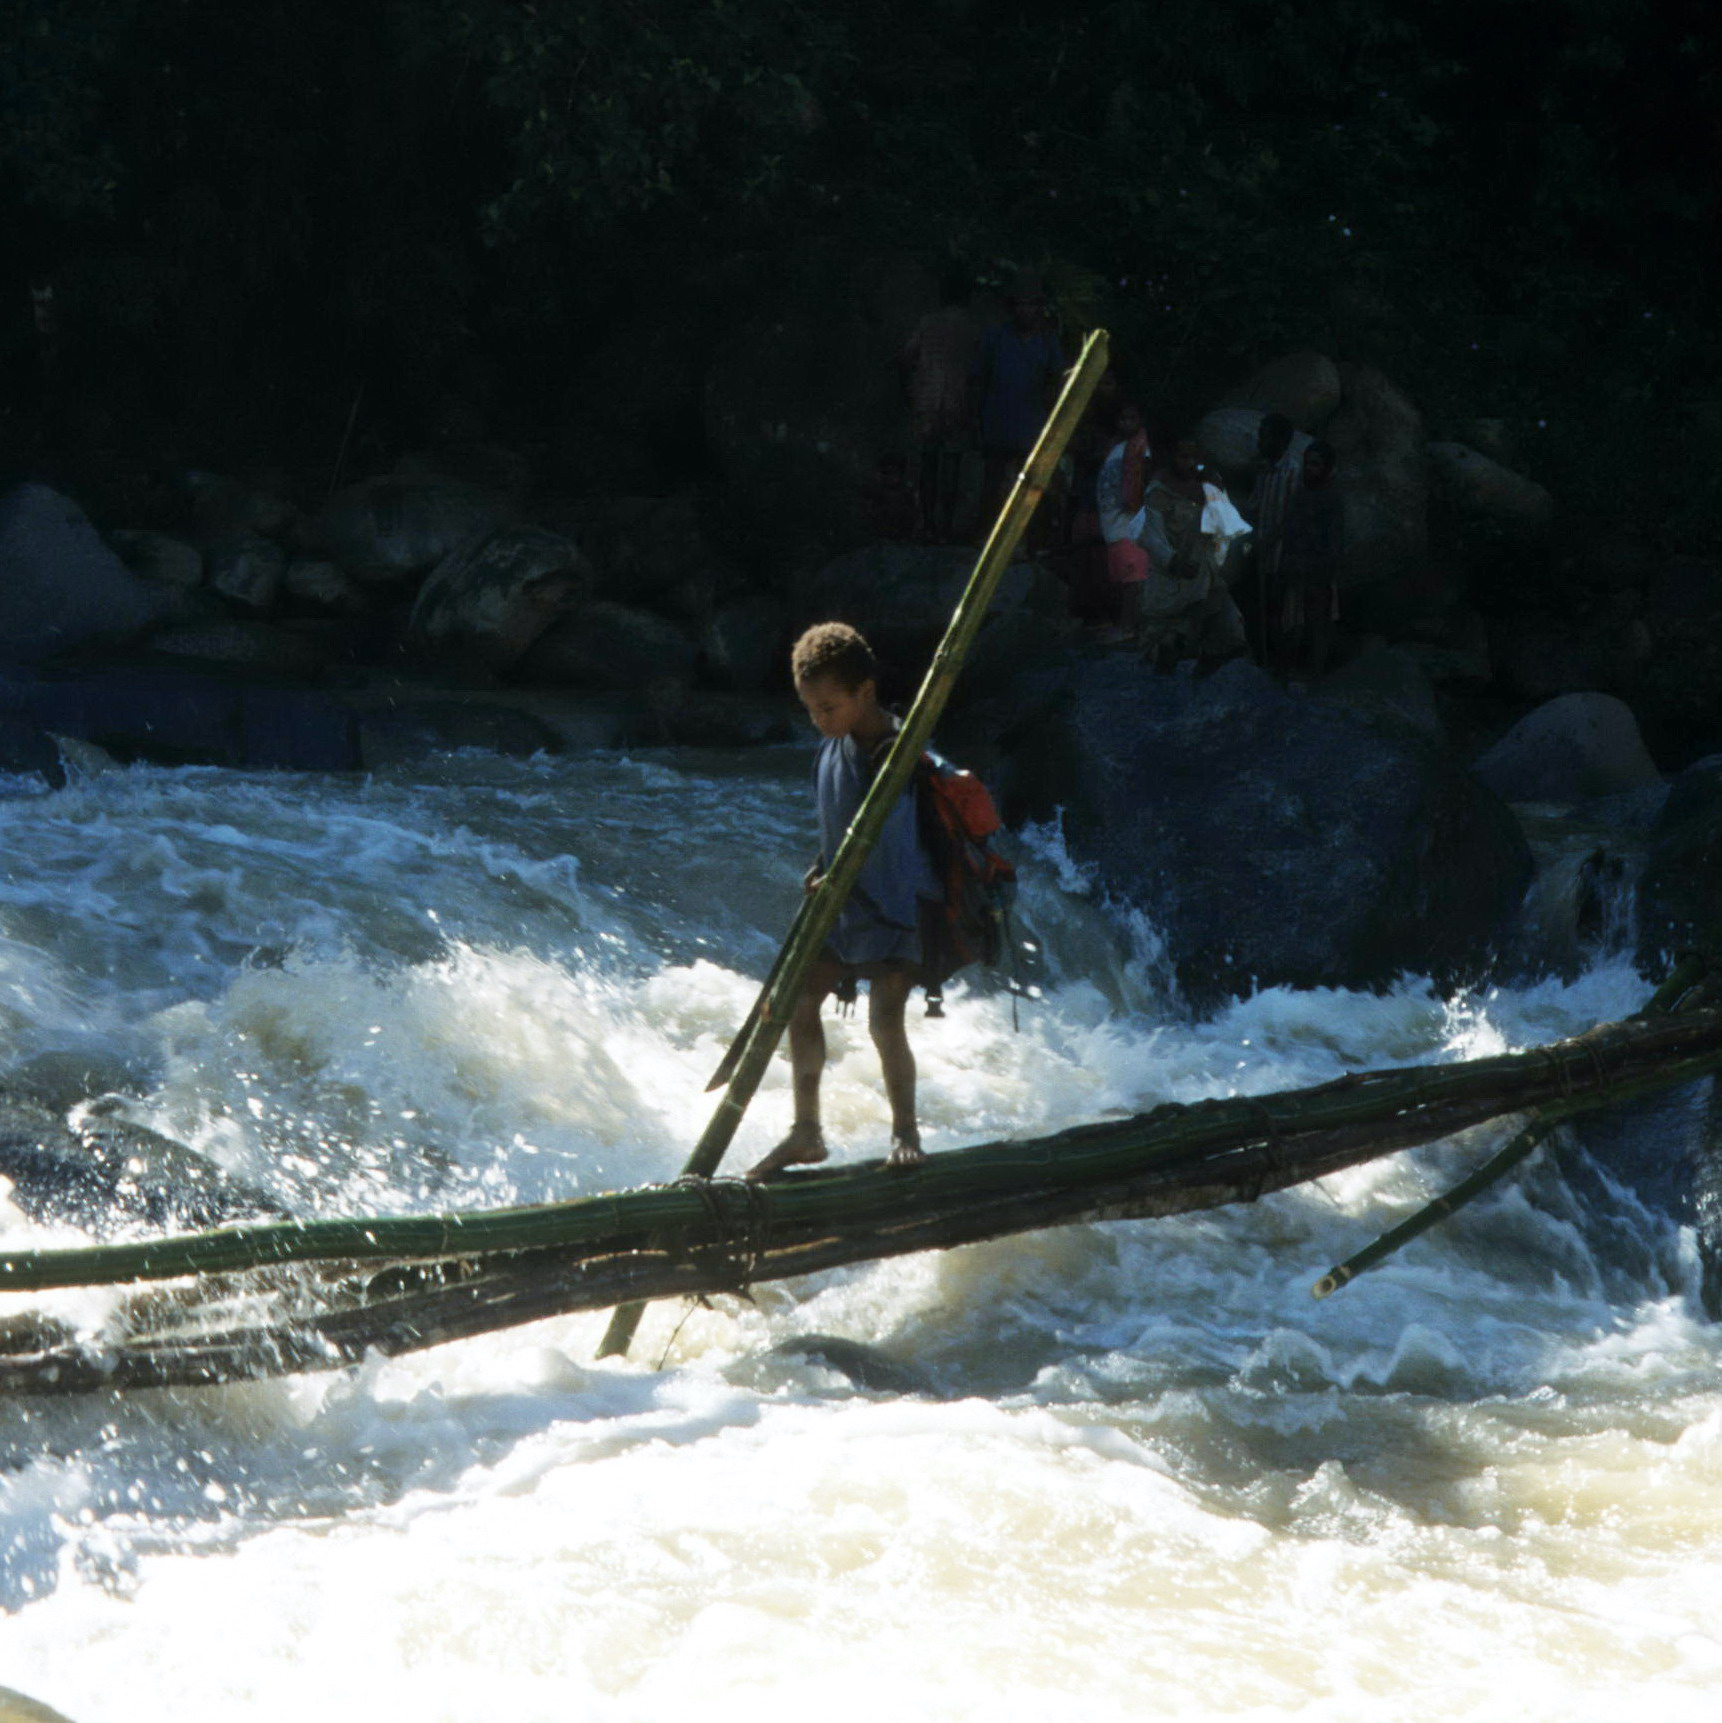 Young Boy Crossing River, New Guinea Art, Oceanic Art, South Pacific Art, Tribal Art